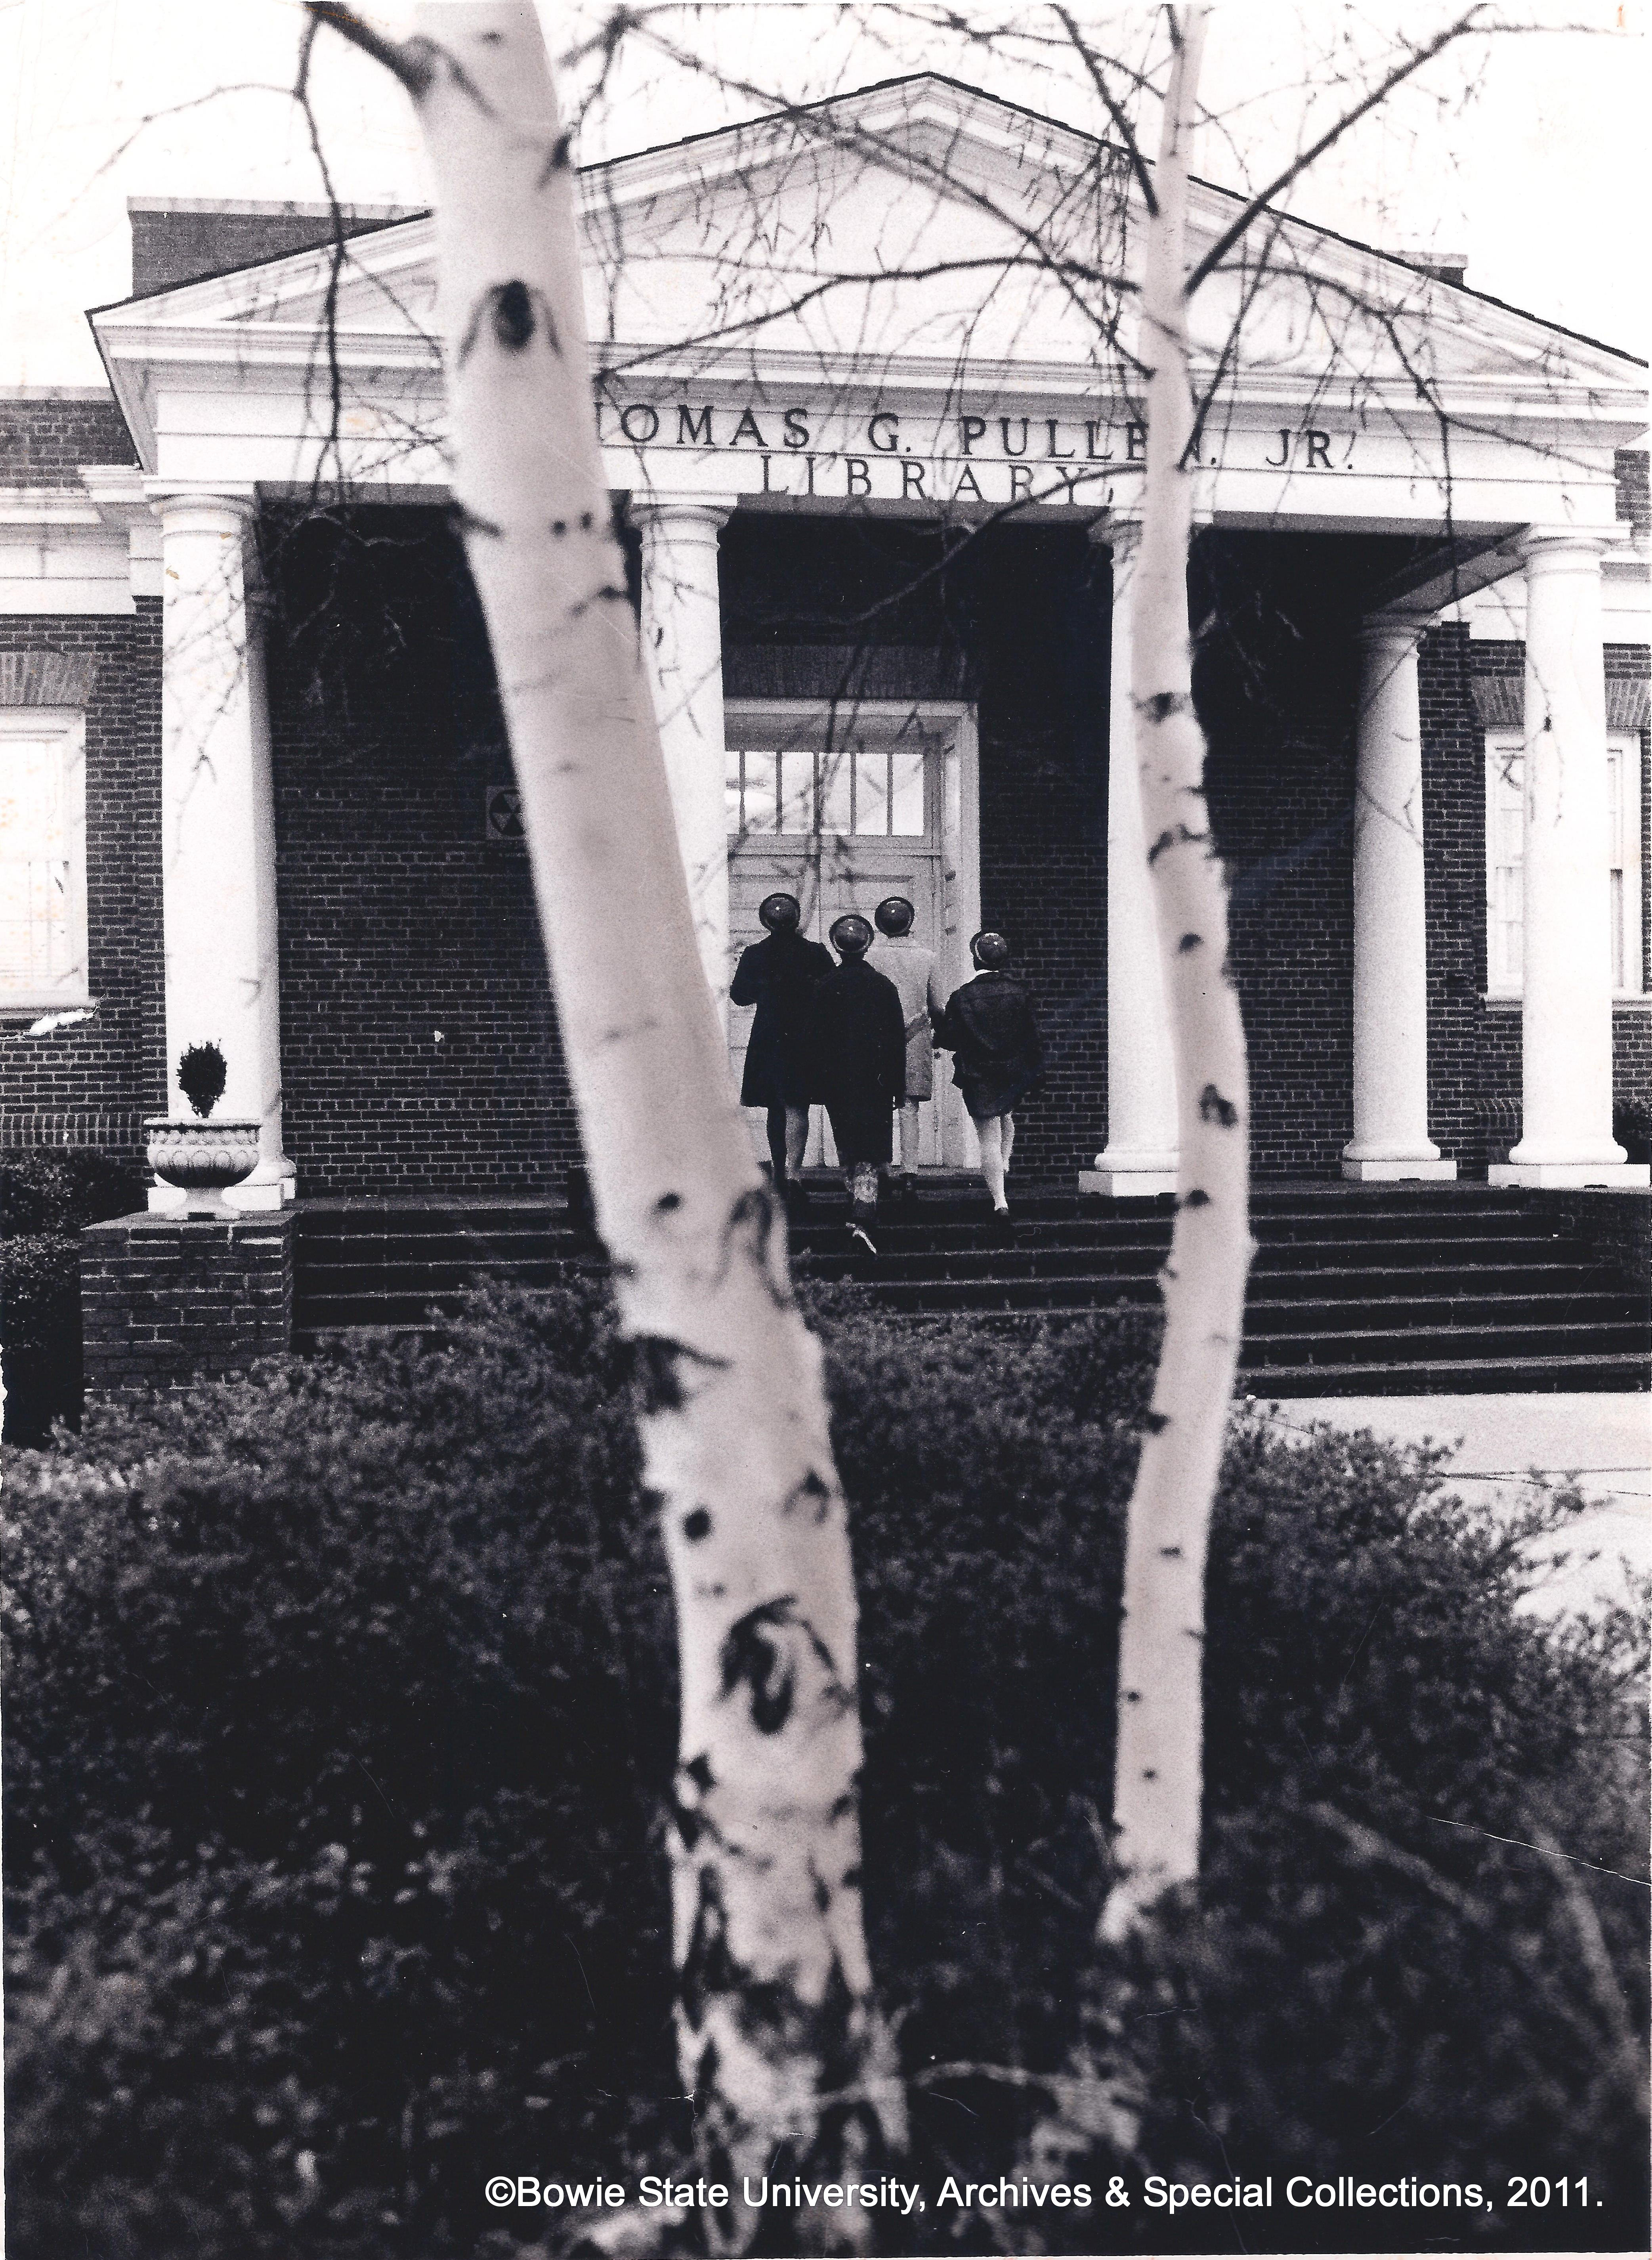 Thomas Pullen Library